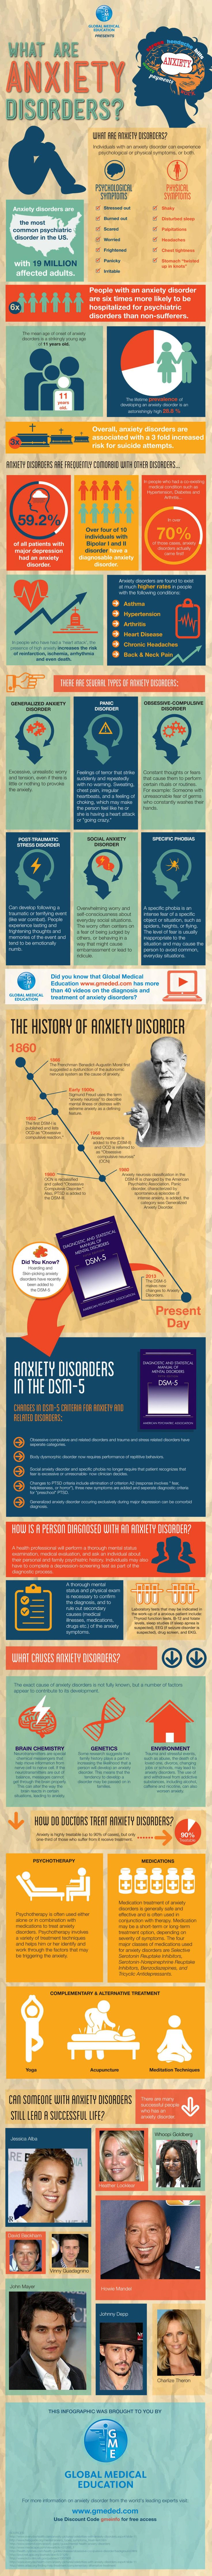 Anxiety Disorders is a common term used for numerous psychiatric disorders caused by worrying, uneasiness, apprehension and fear which cause severe damage to both physical and mental self. #anxiety #health